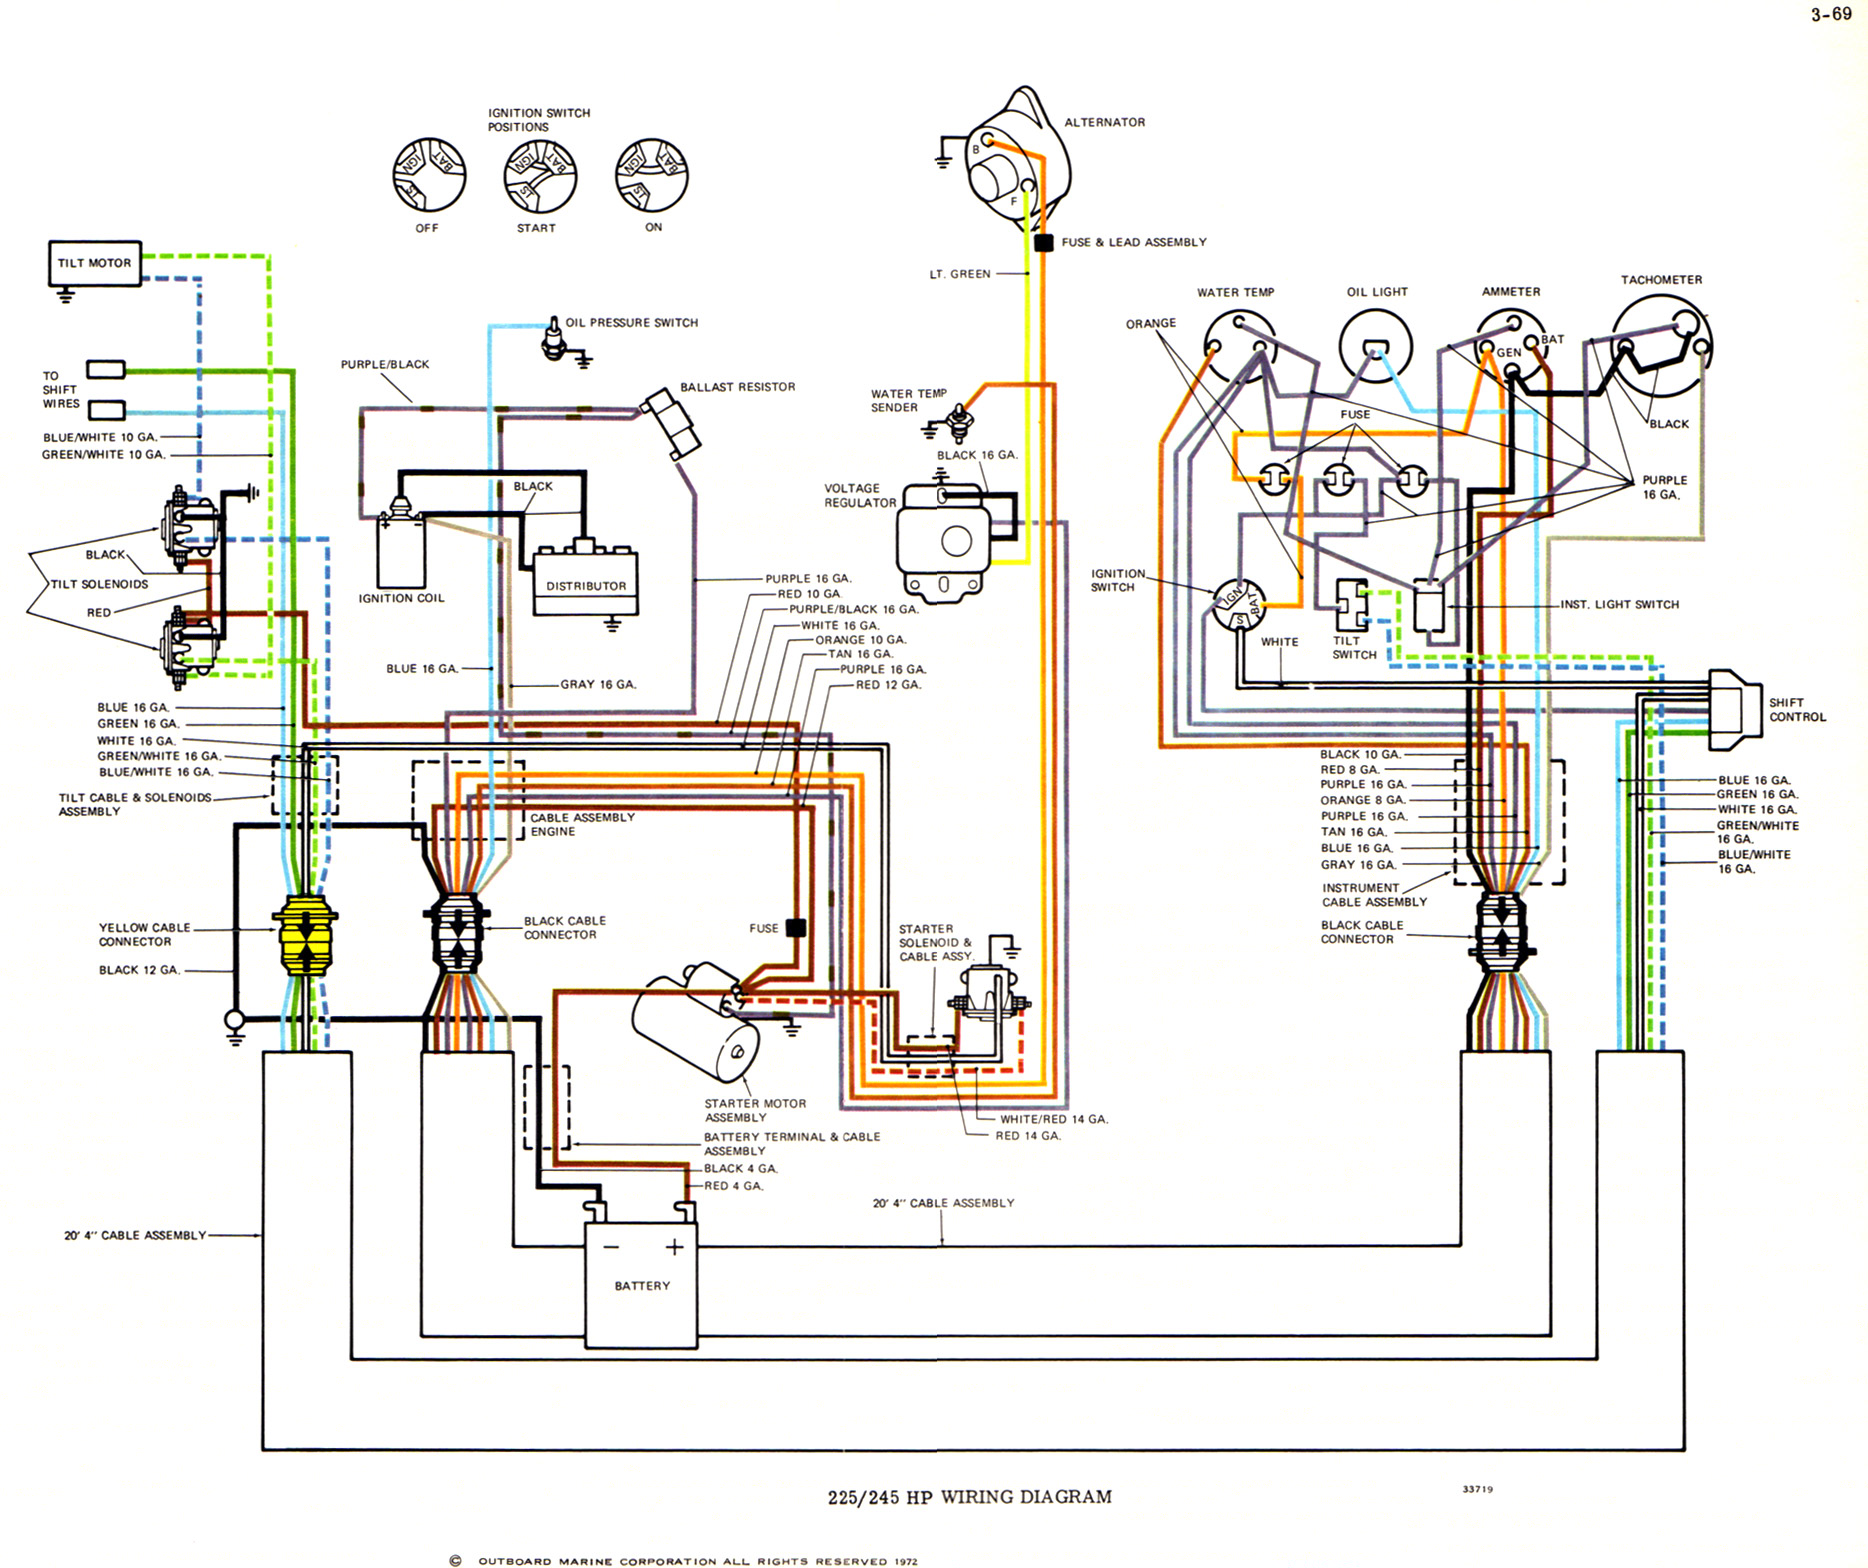 Wiring Diagram For Omc Outboard Motor Libraries 200 Hp Mercury Free Download Wire Schematic Diagramsomc Diagrams Todays 115